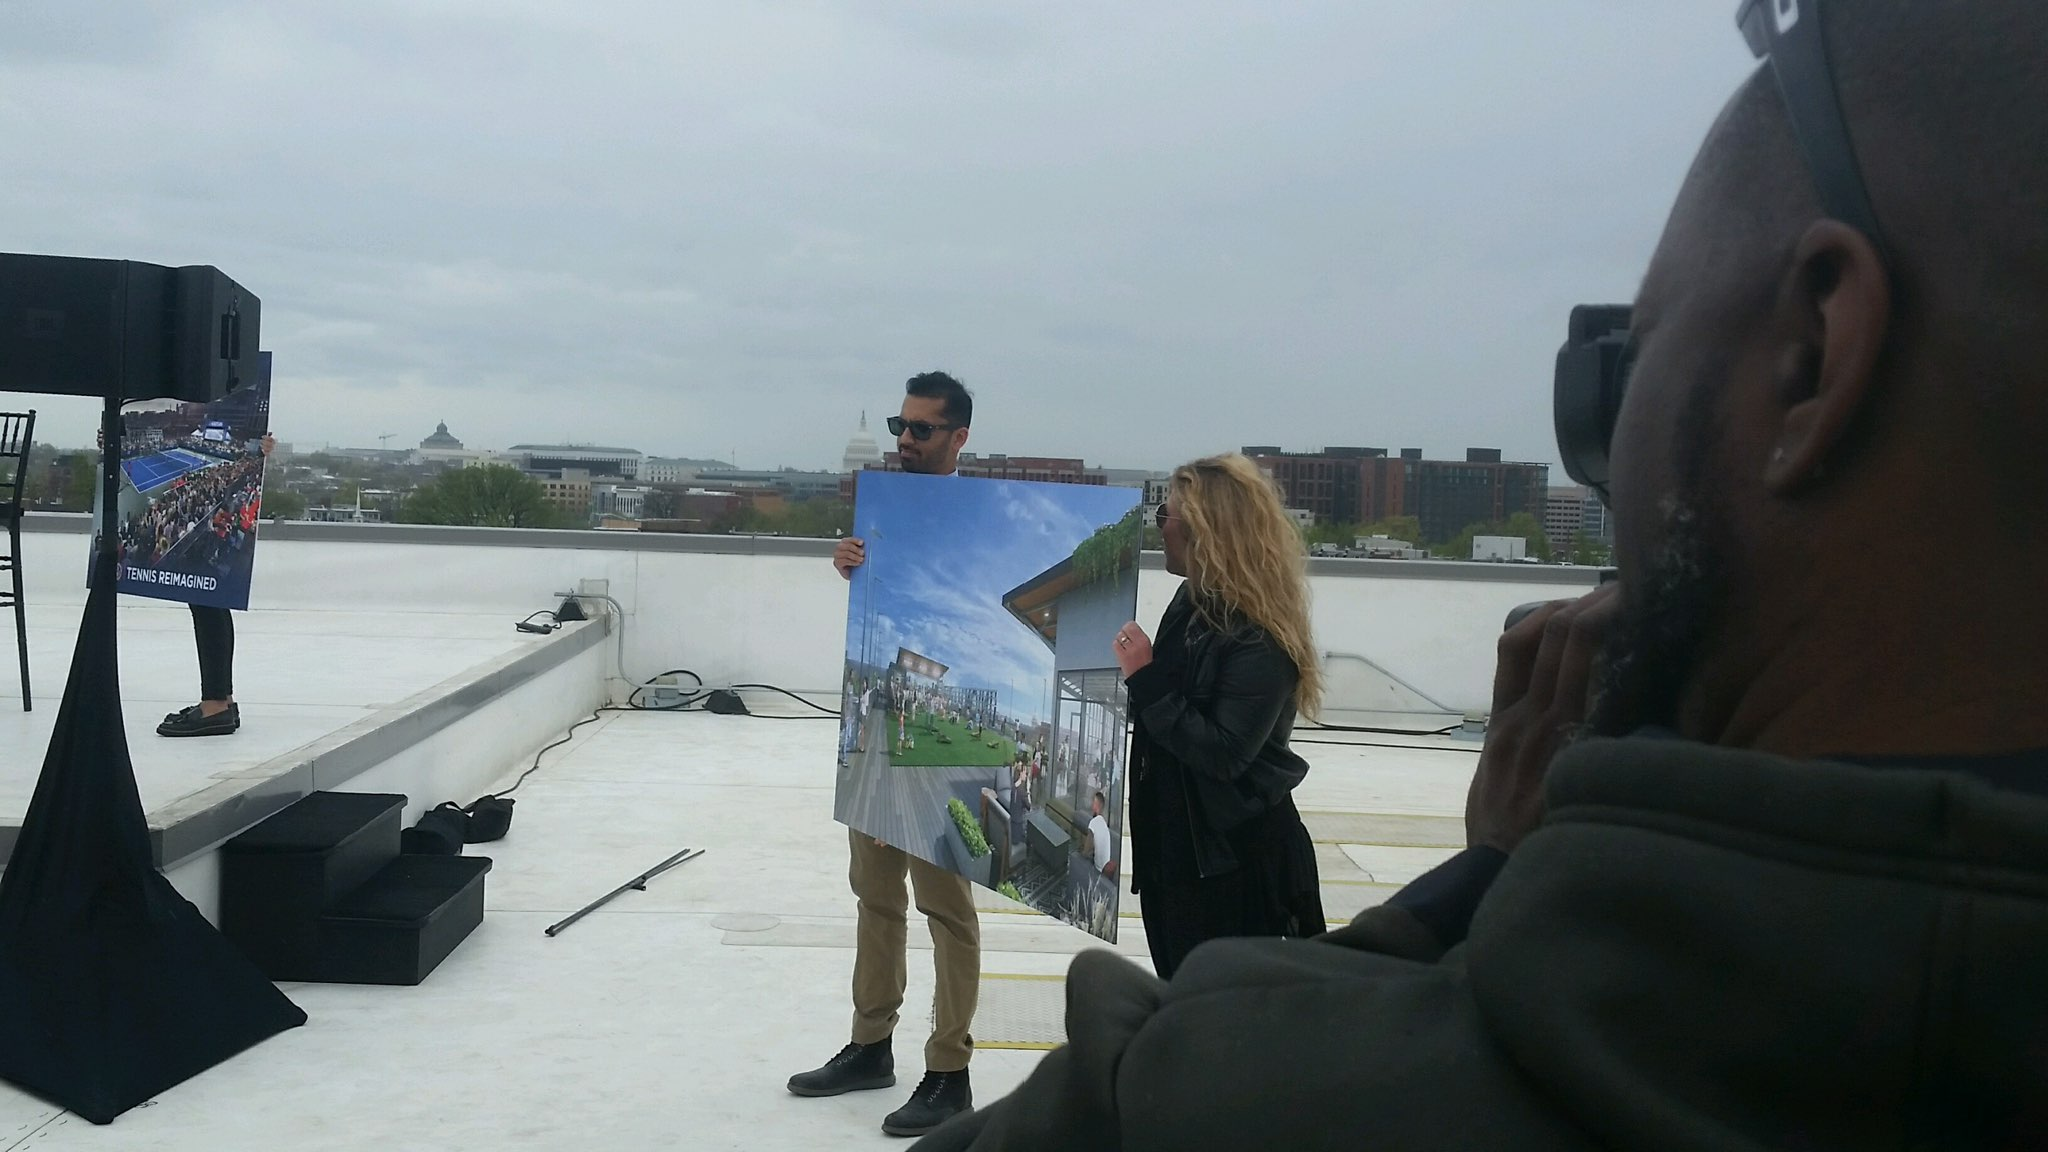 Formal announcement of popup court on the roof of Union Market